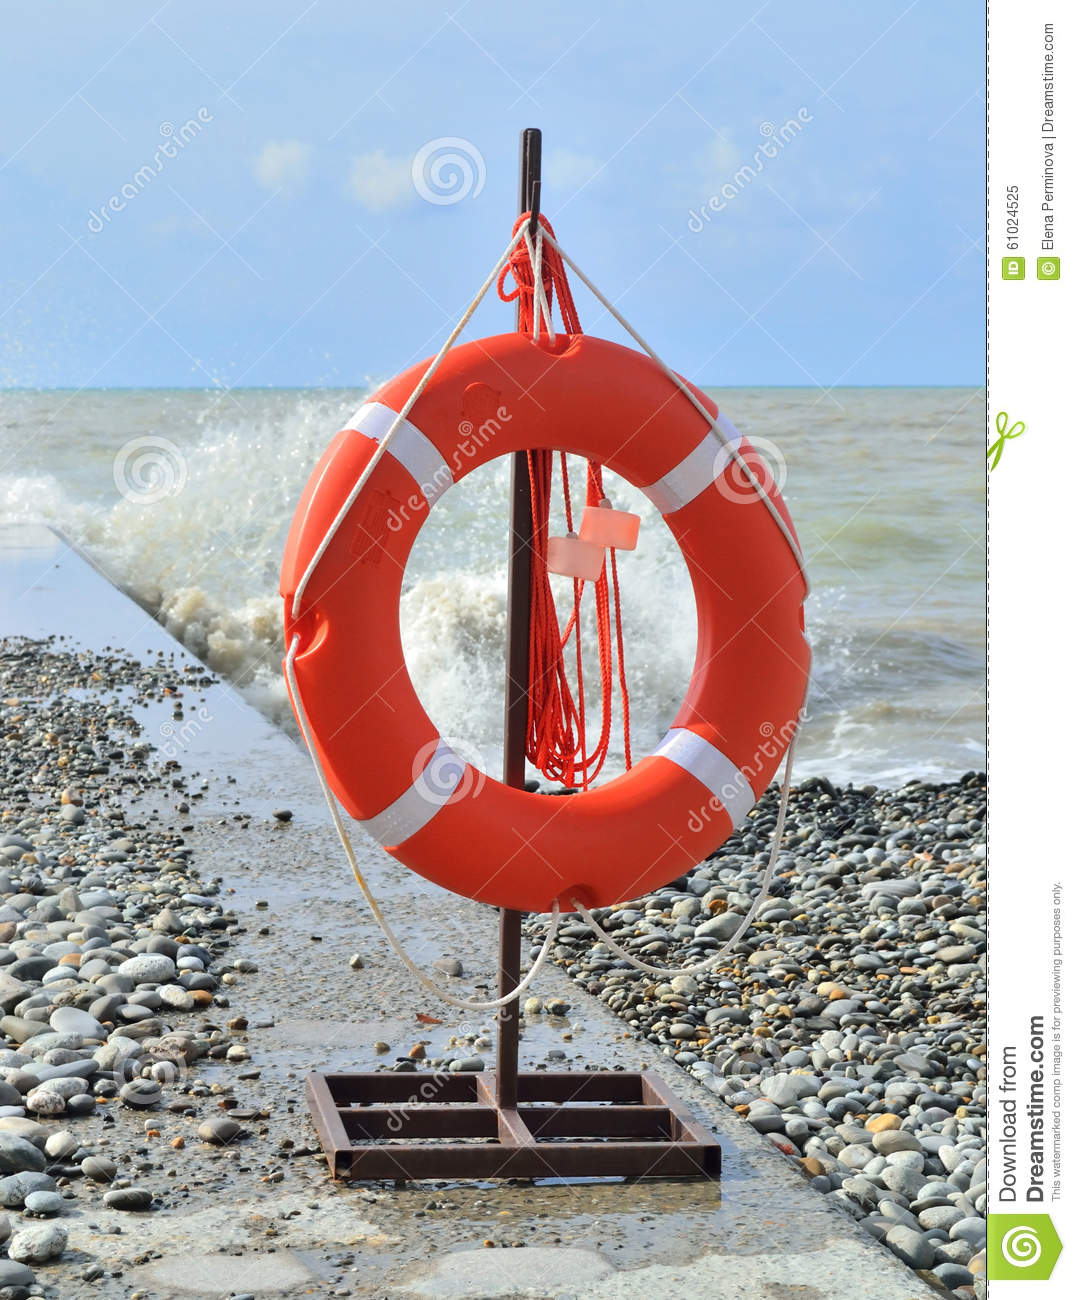 Lifebuoy attached to the seaside